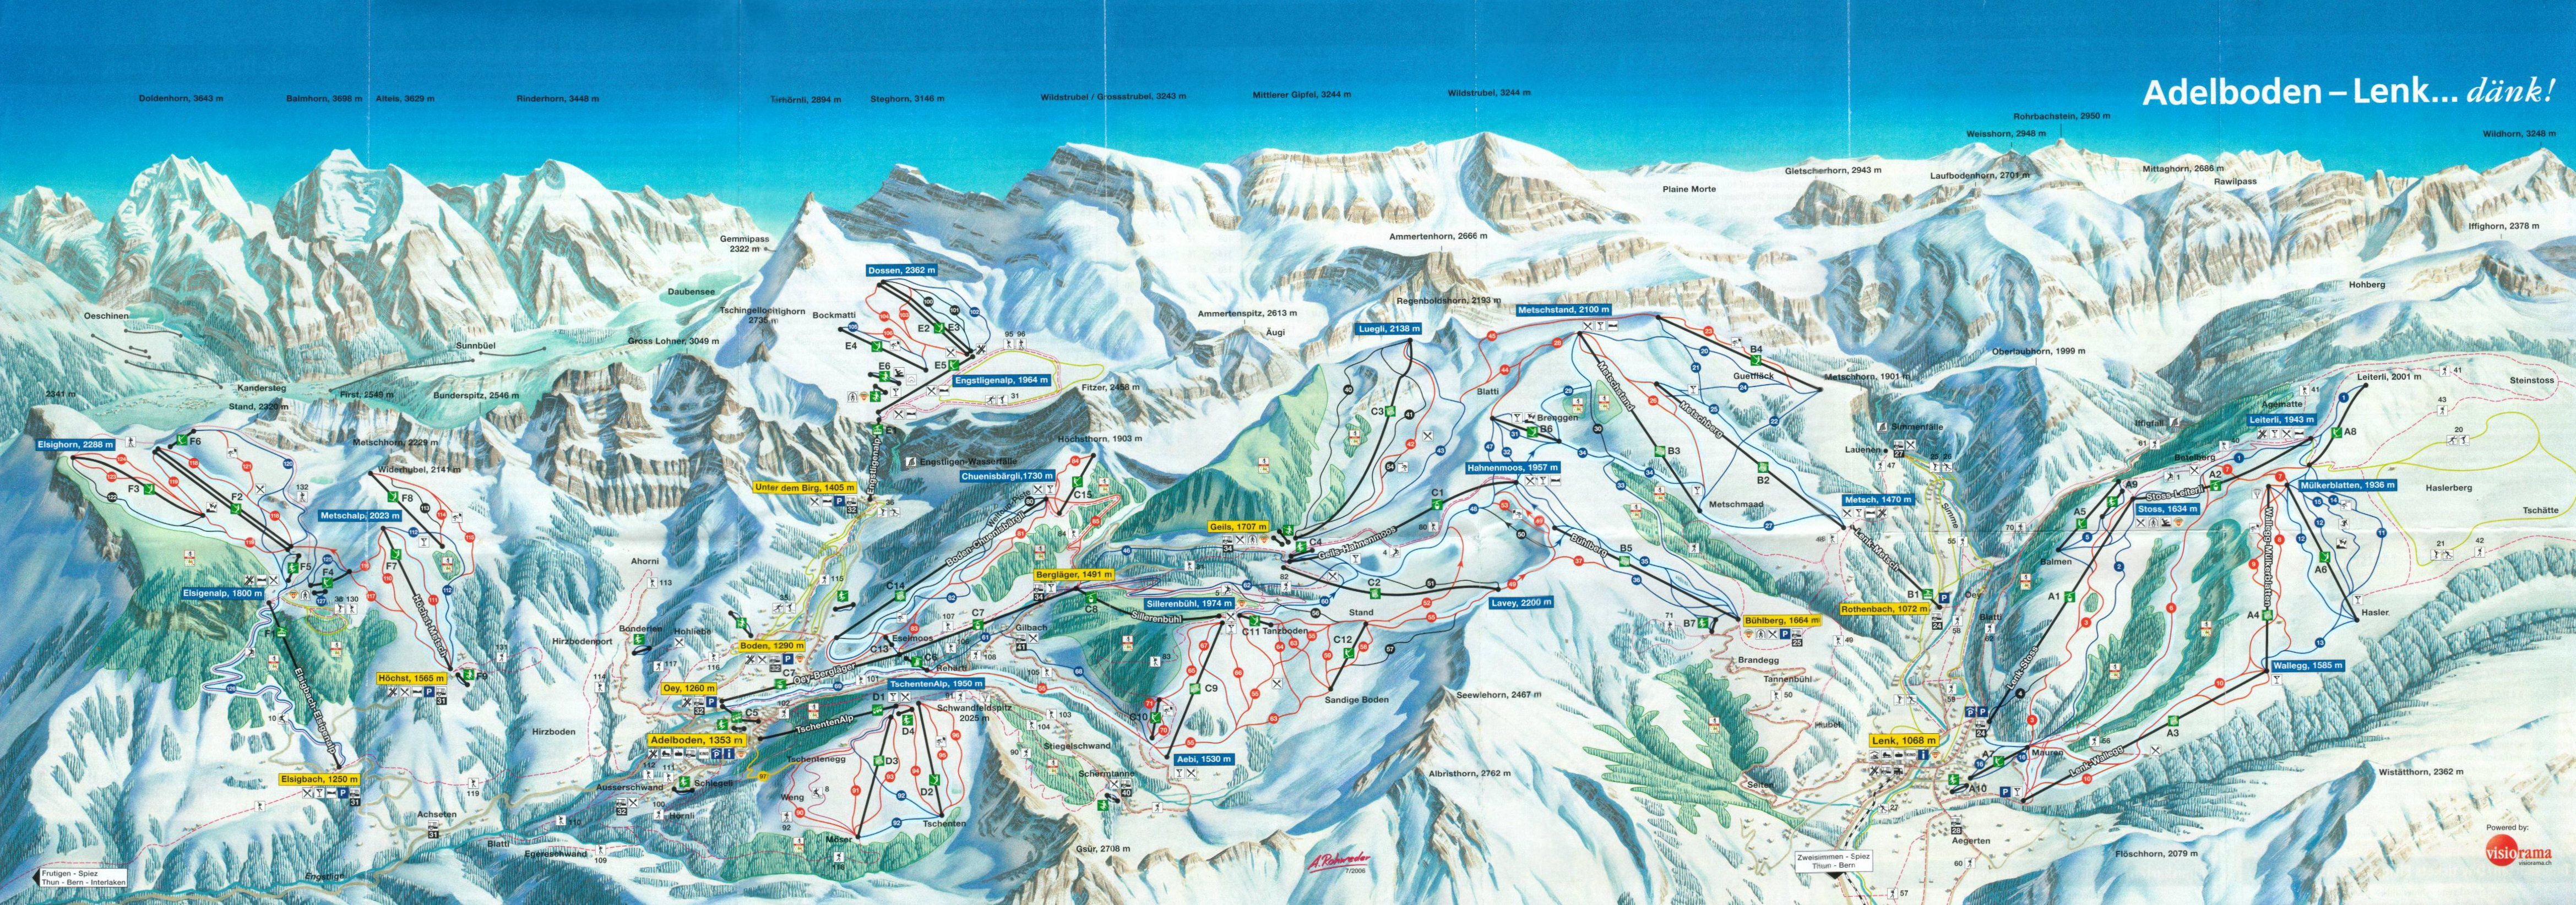 adelboden - ski map